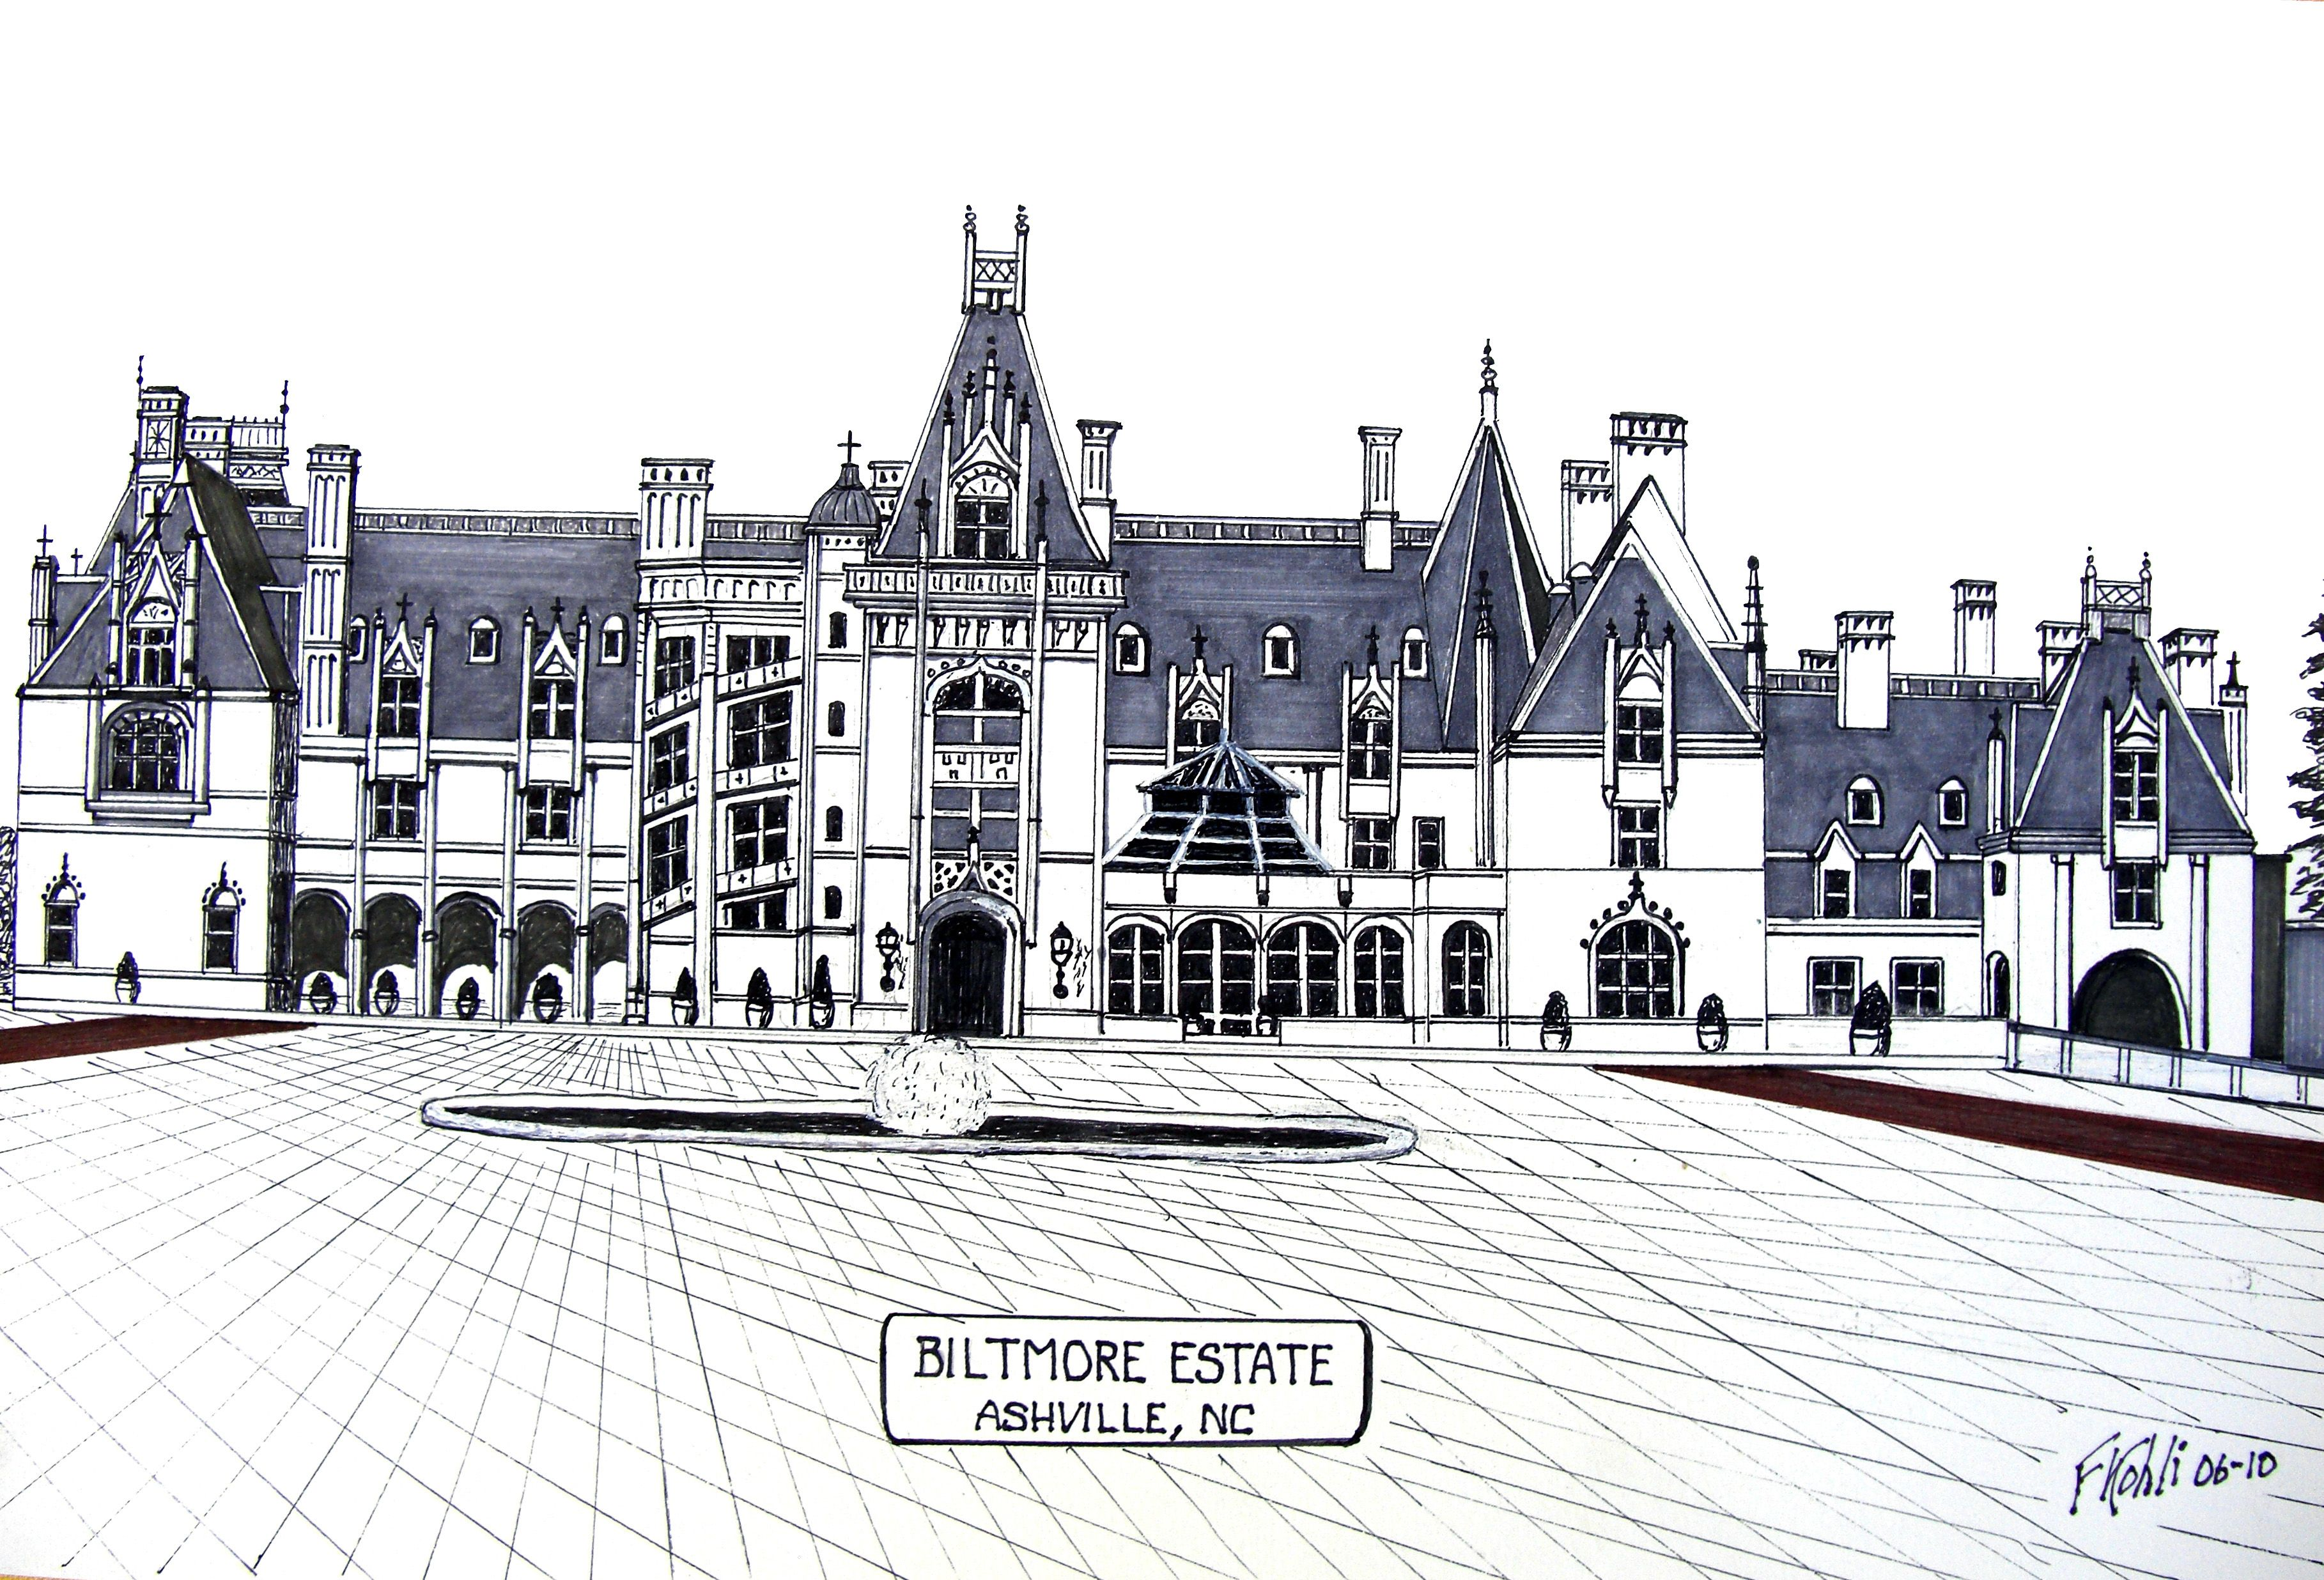 Pen and ink drawing by frederic kohli of the famous biltmore estate in western north carolina